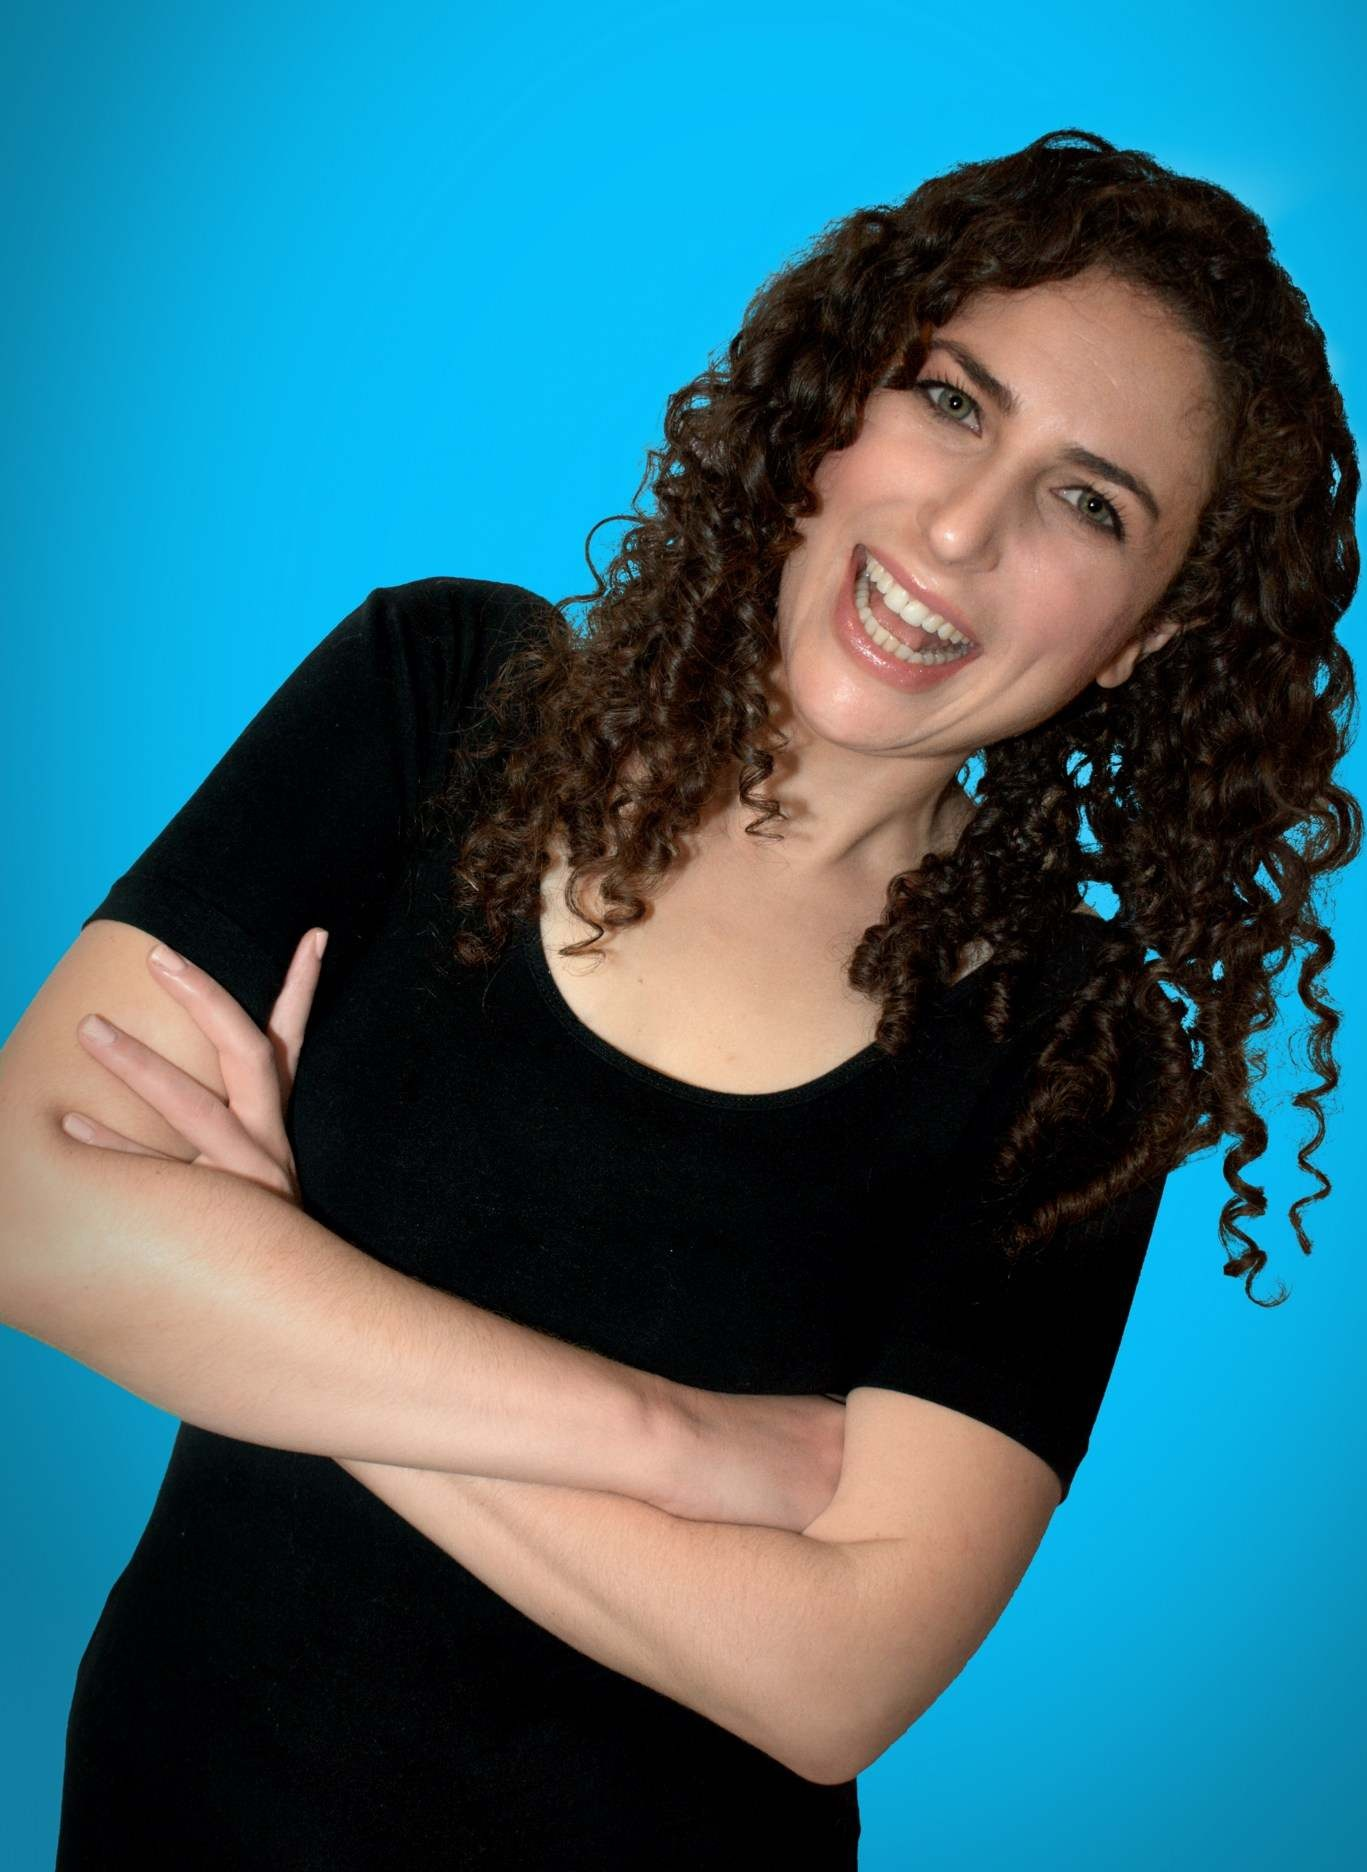 "Aviel Stern - Co-Founder/Co-ProducerAviel Stern is Currently located in Northampton, Massachusetts. Aviel is known for her sincere and intuitive persona both on and off the stage. Her voice interweaves her perspectives on dating, adulthood, and secret desires. Her skillful presence dazzles stages in areas such as Boston, Providence, New Hampshire, The Berkshires, Western Massachusetts, and Connecticut.Aviel's stand-up career includes opening for Joe List at the Hartford Funny Bone, Dave Hill, and David Feldman. She has also shared the stage on New York City's exclusive Brooklyn apartment comedy show ""You're Dating a DJ?"" which hosts up-and-coming and accomplished NYC comedians."